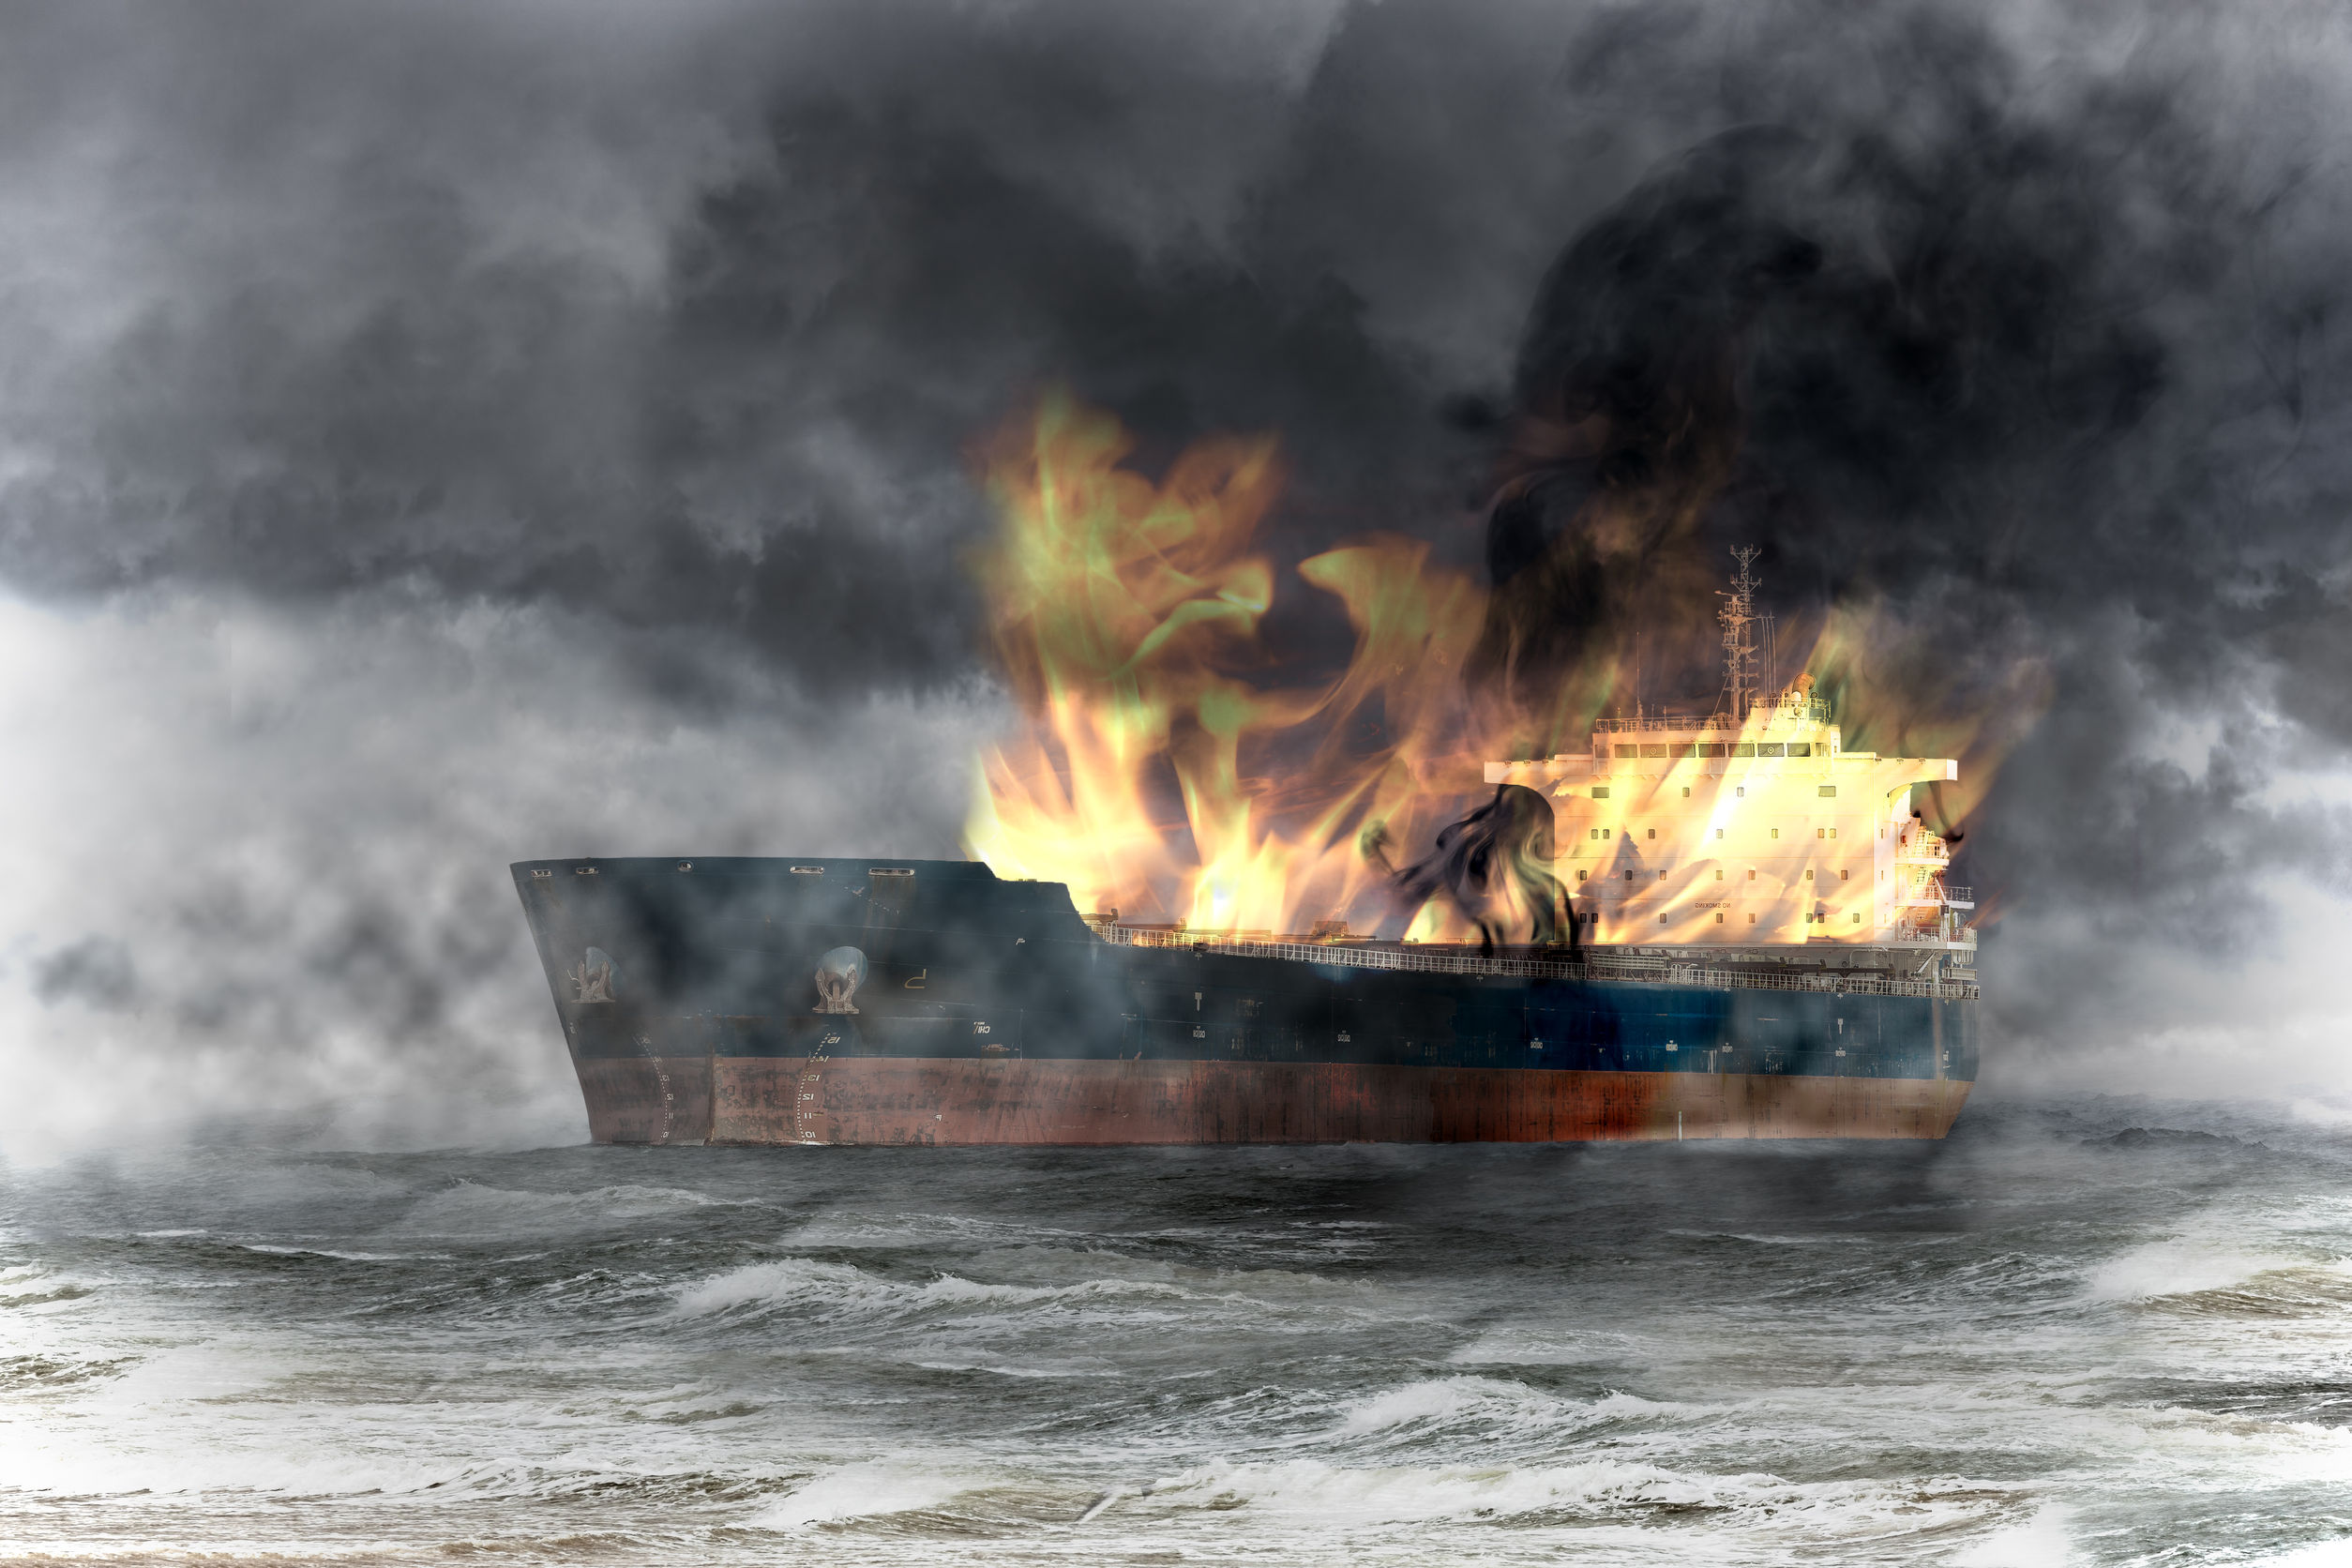 How To Be The Ceo Who Saves A Sinking Ship